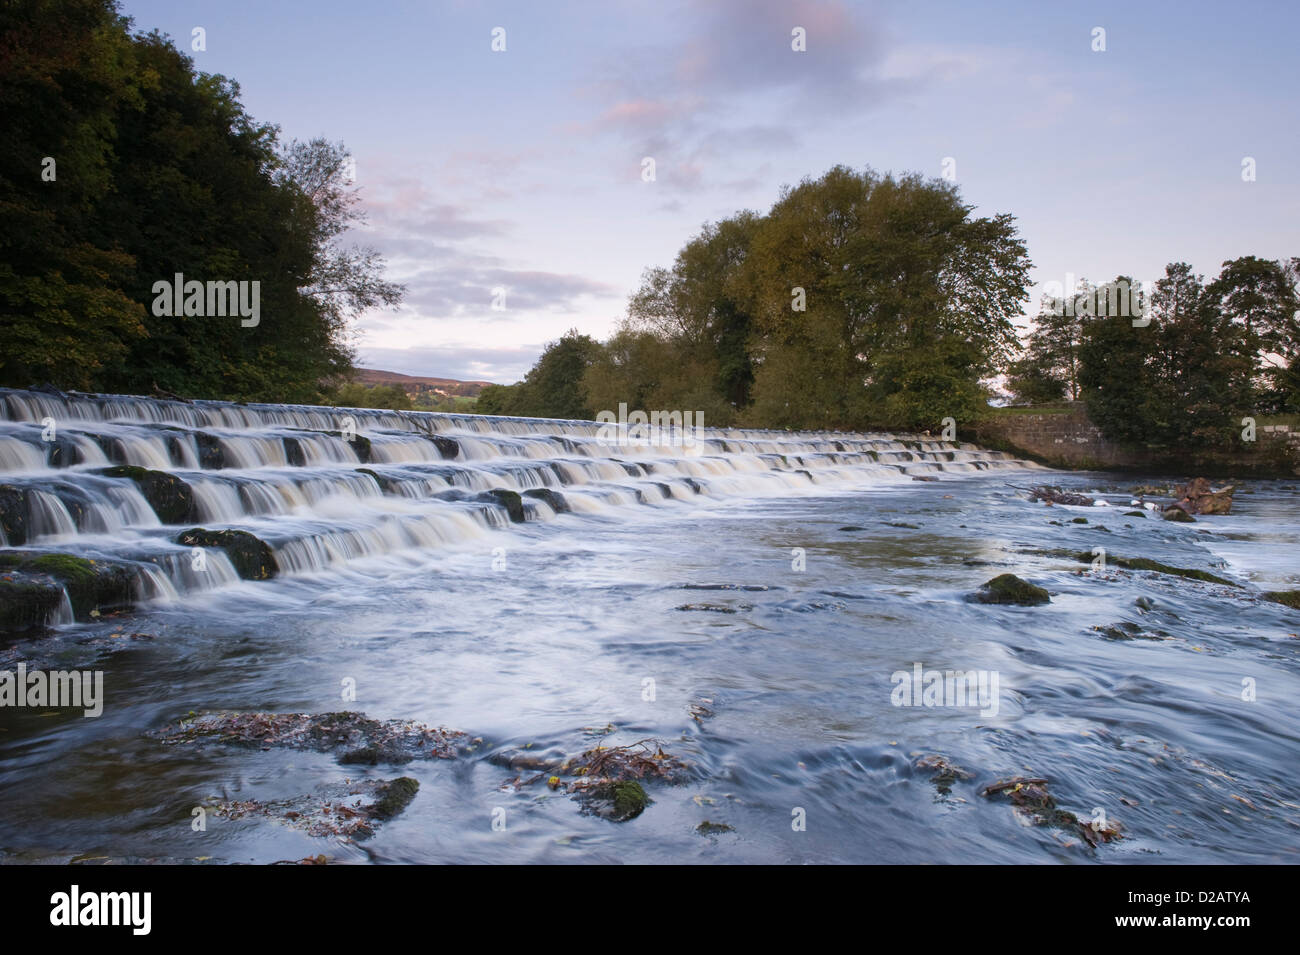 Scenic, evening, rural landscape of water flowing & tumbling over & down weir steps - River Wharfe, Burley - Stock Image